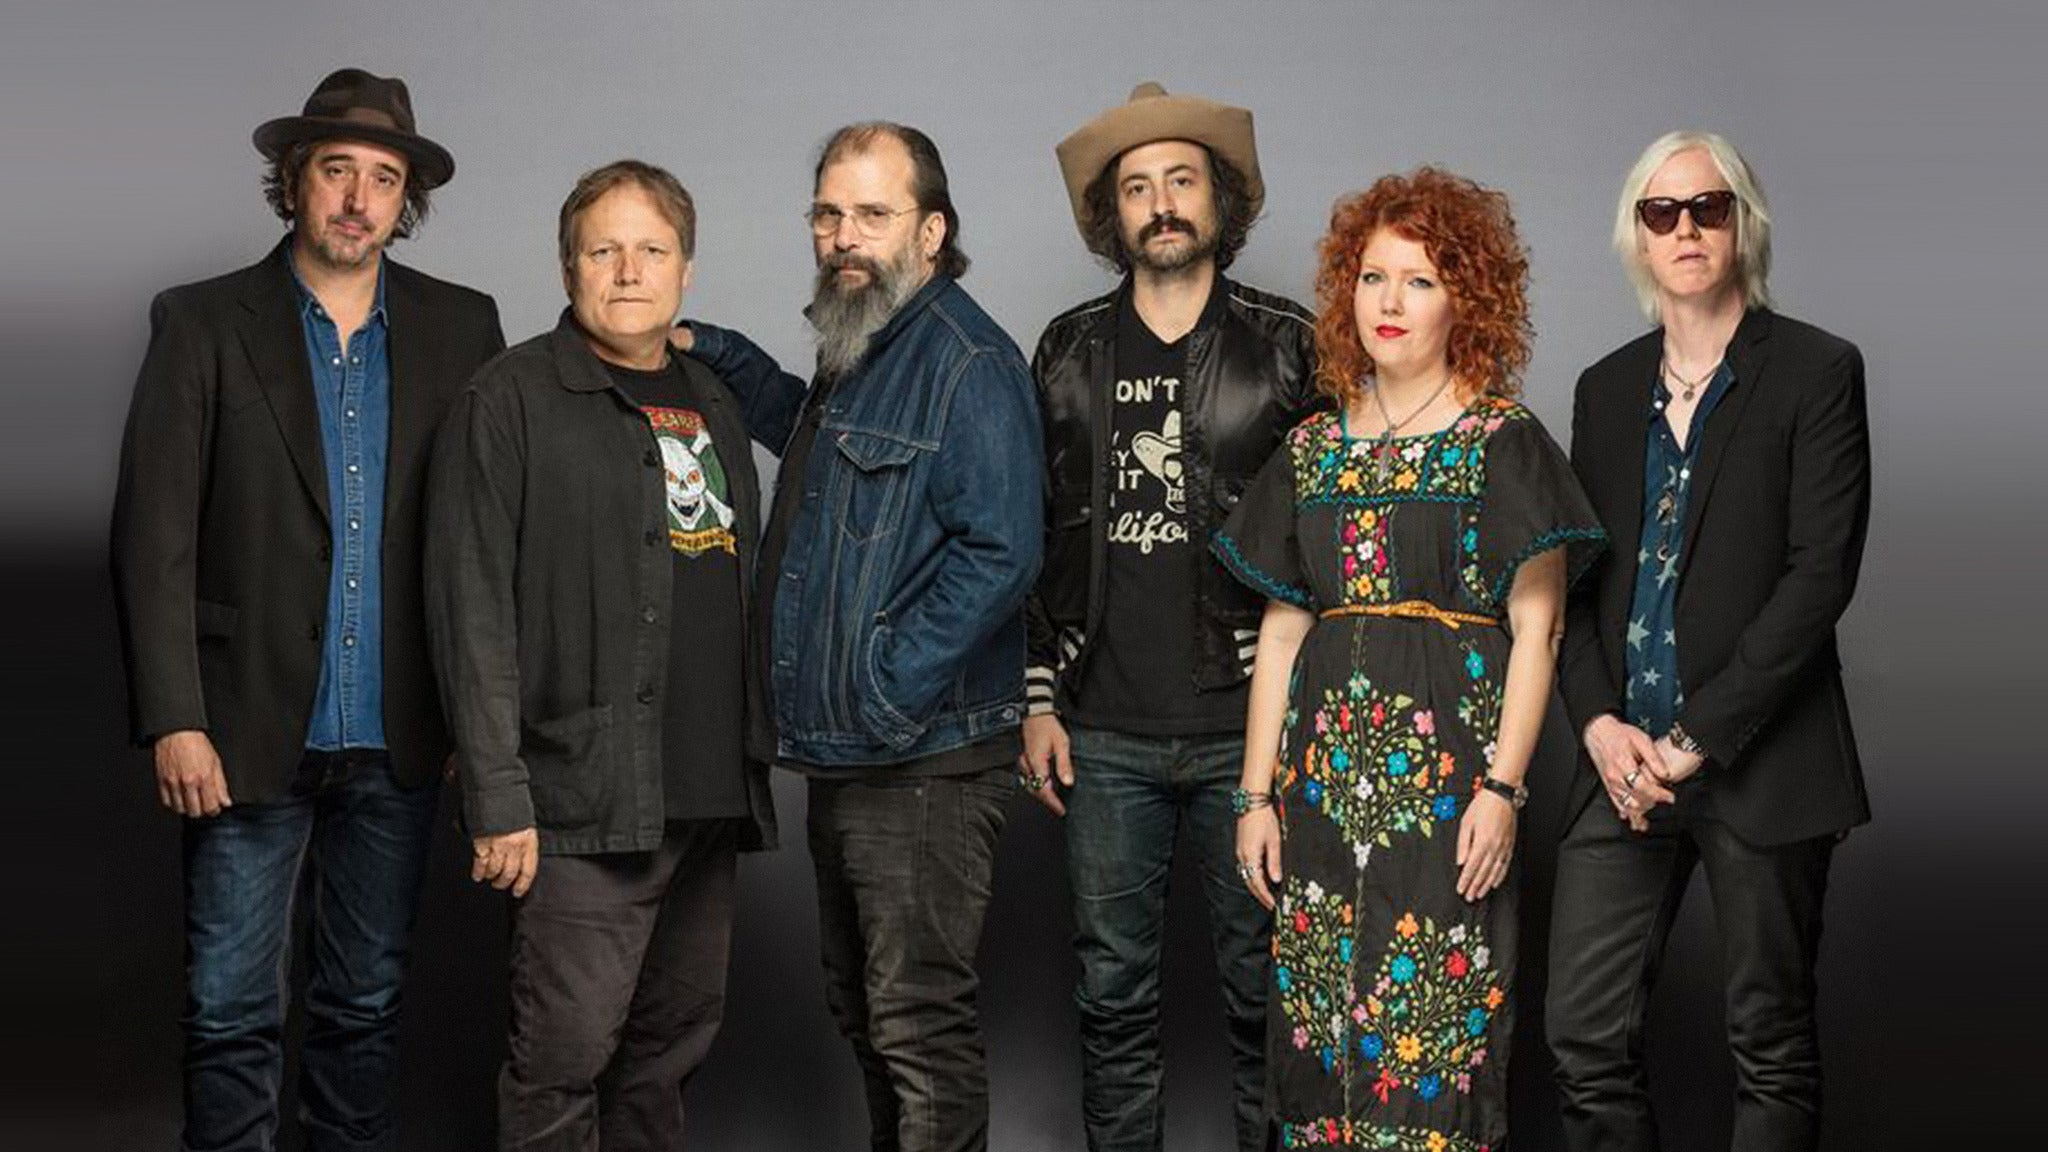 Steve Earle & The Dukes Copperhead Road 30th Anniversary